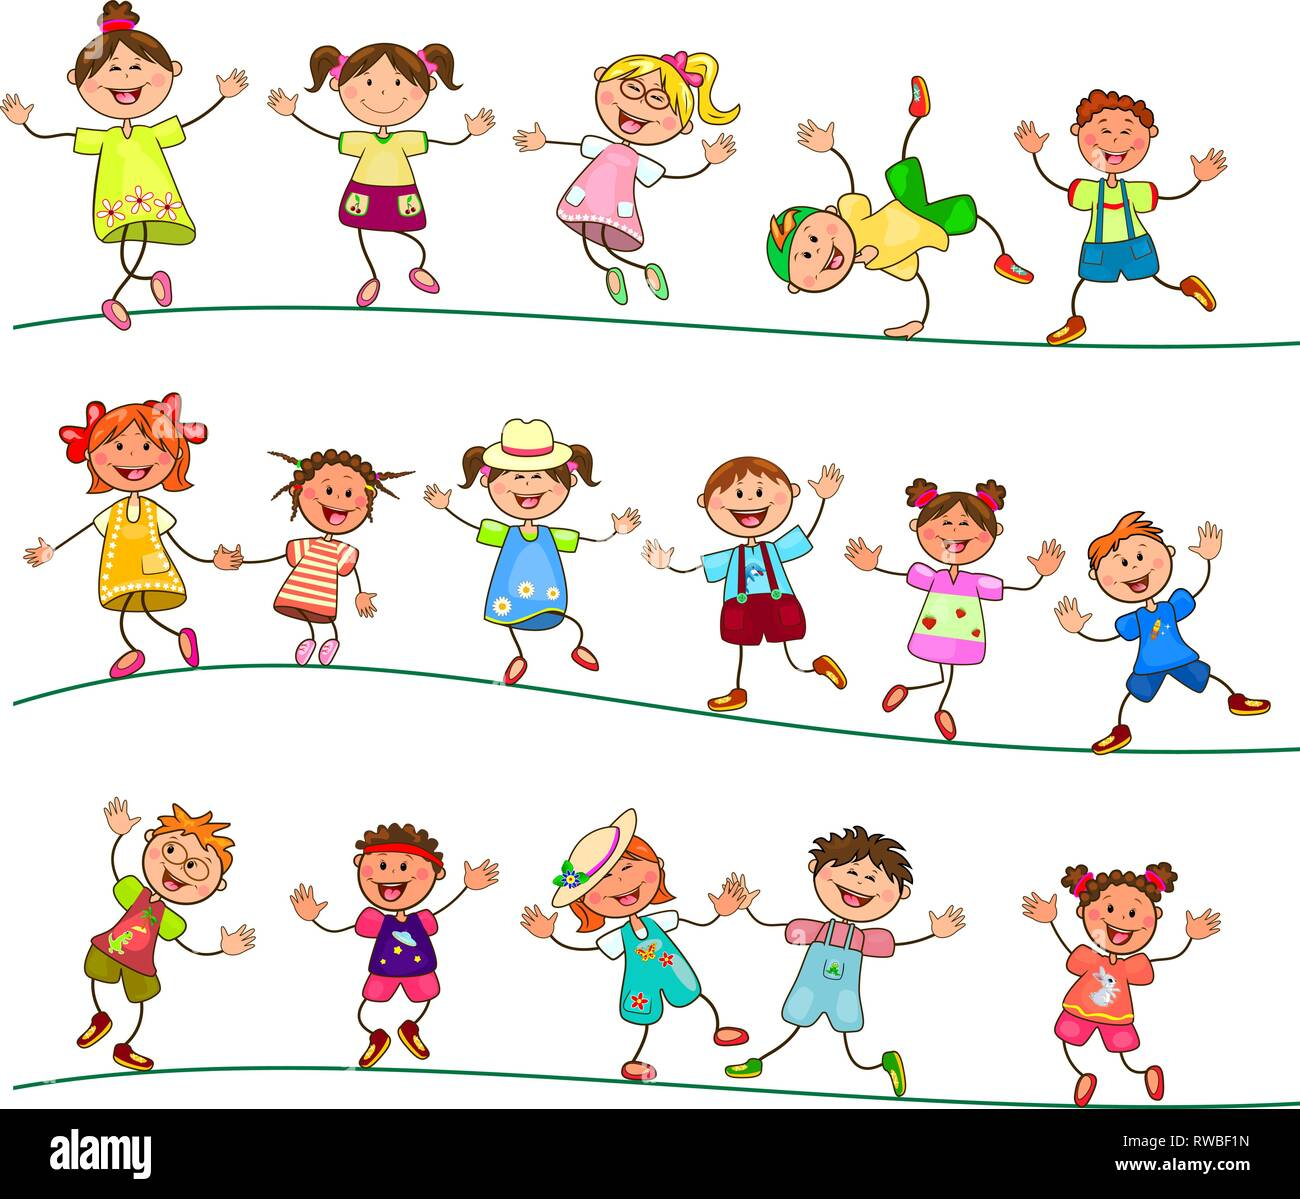 Group of cheerful, smiling children on a white background. Cartoon joyful children. Group of happy, smiling children. - Stock Vector